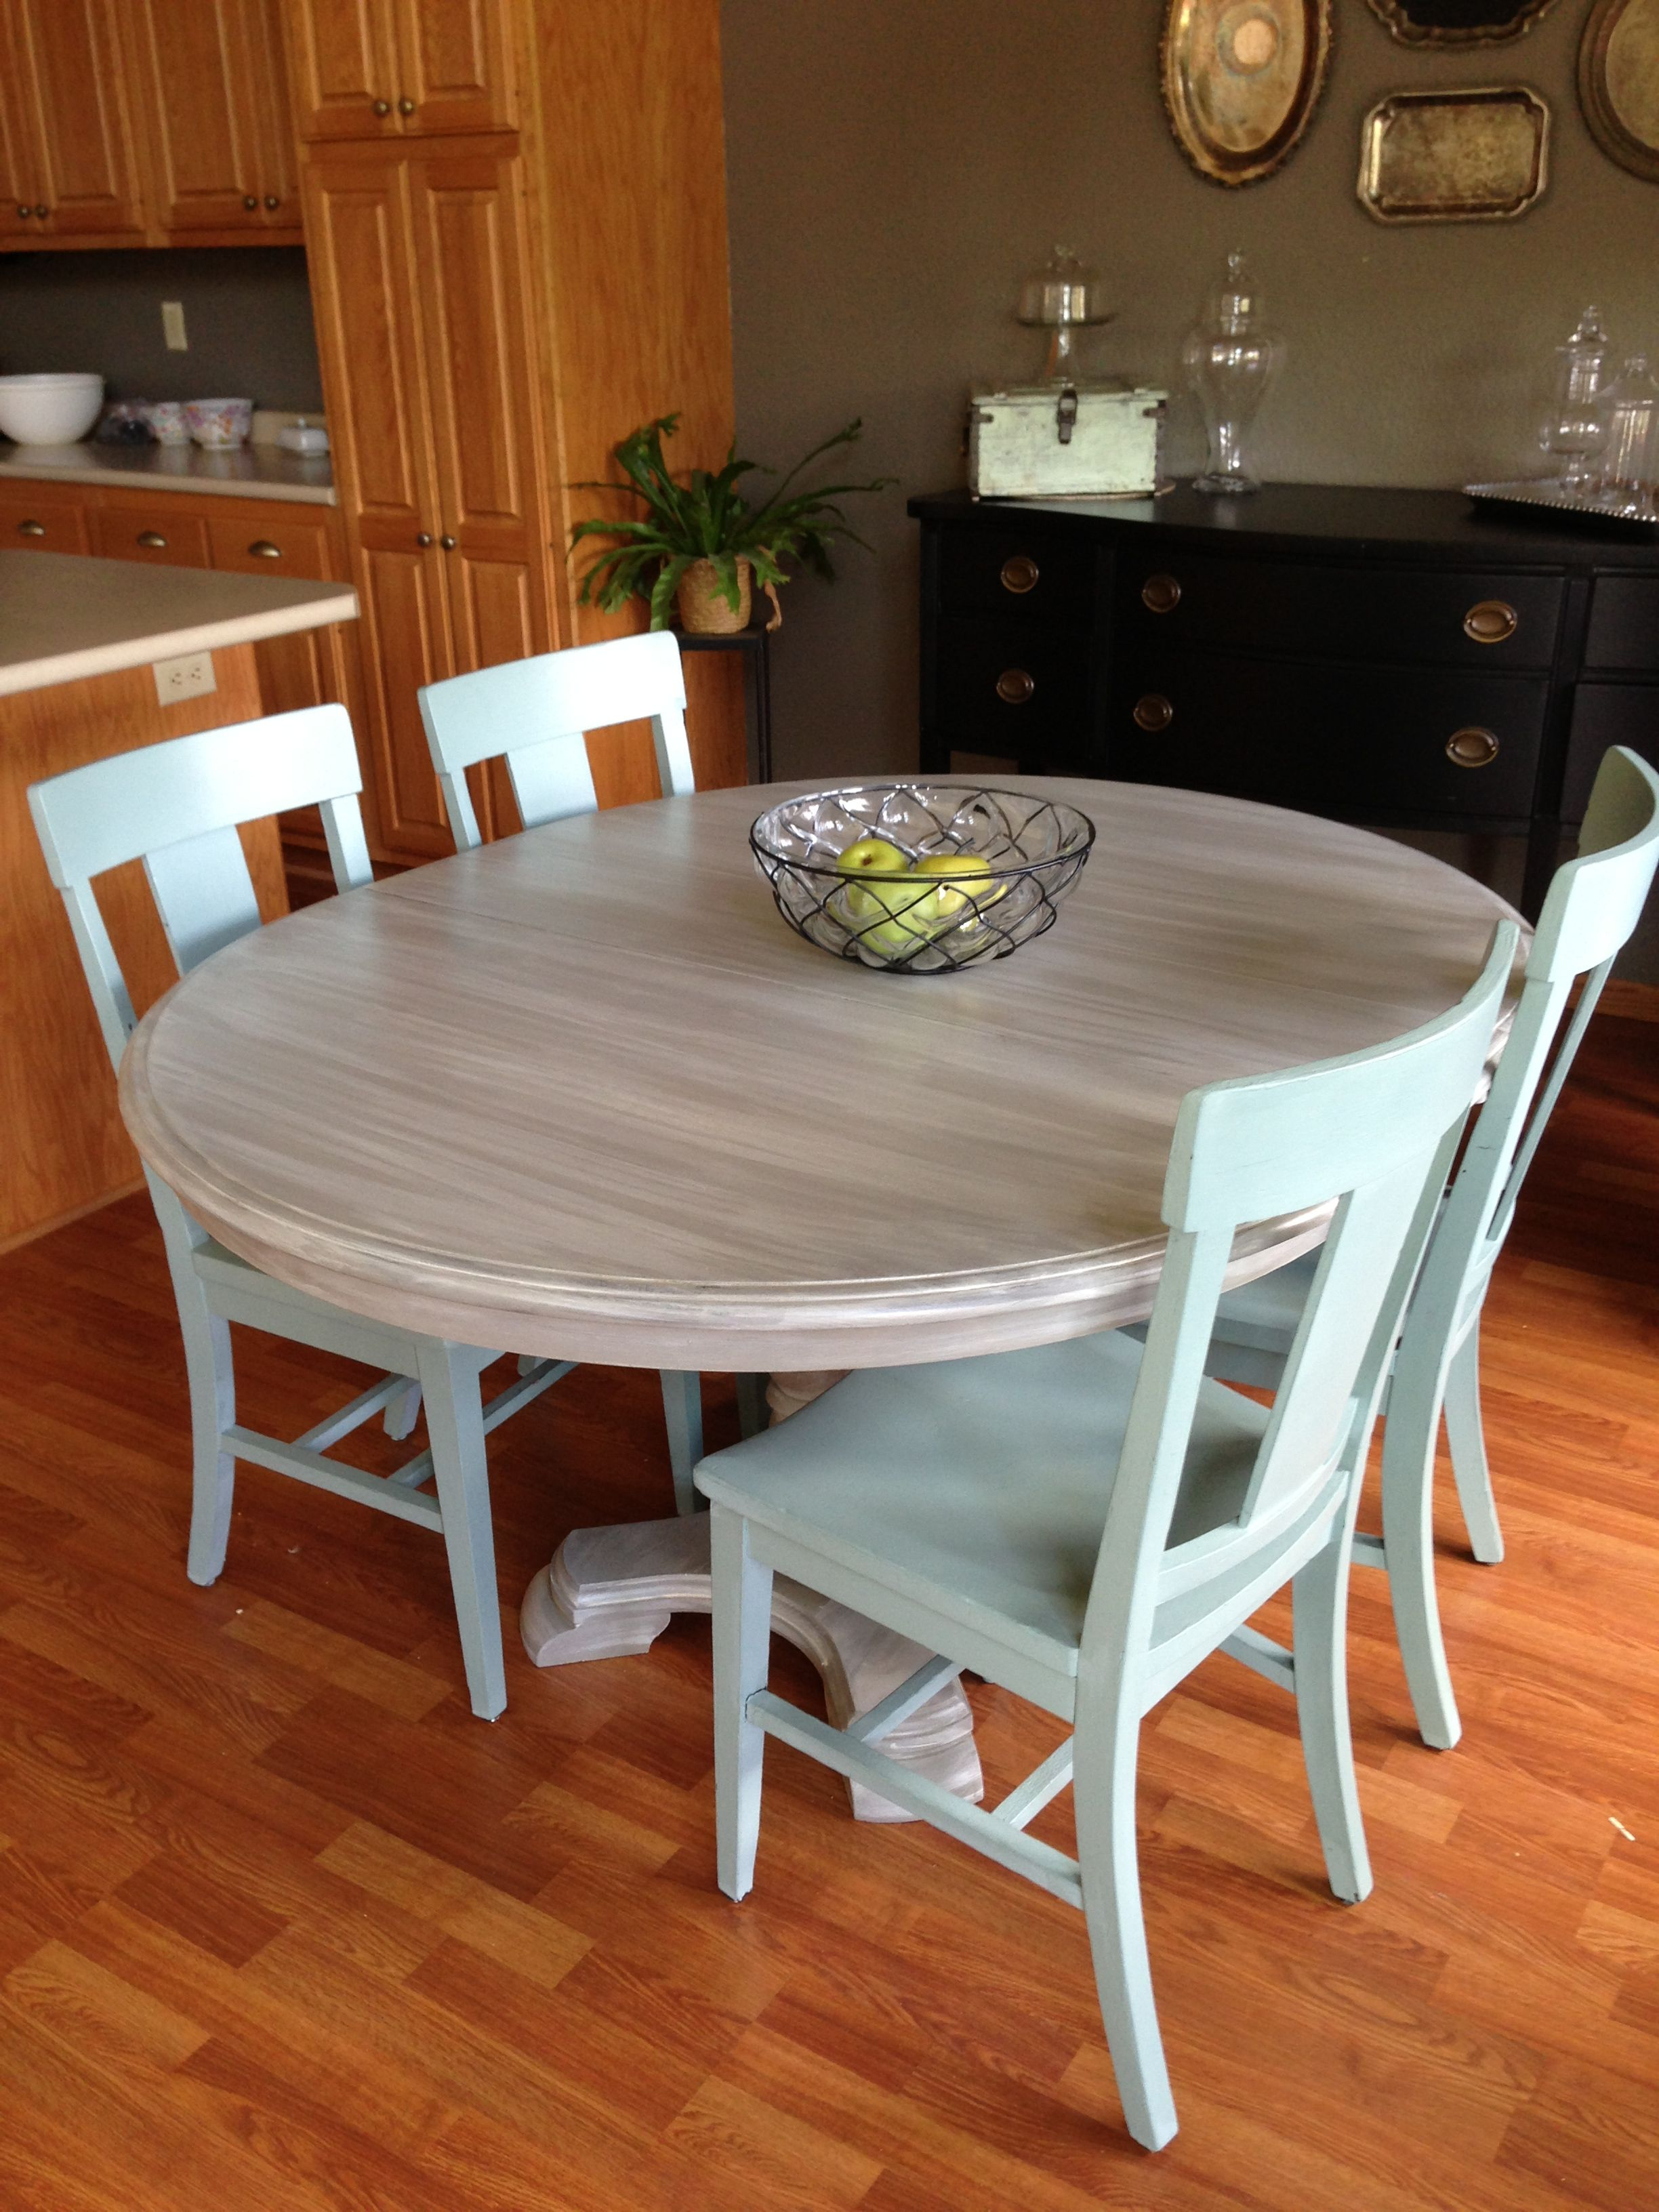 Kitchen Chairs And Table Makeover With Annie Sloan Chalk Paint